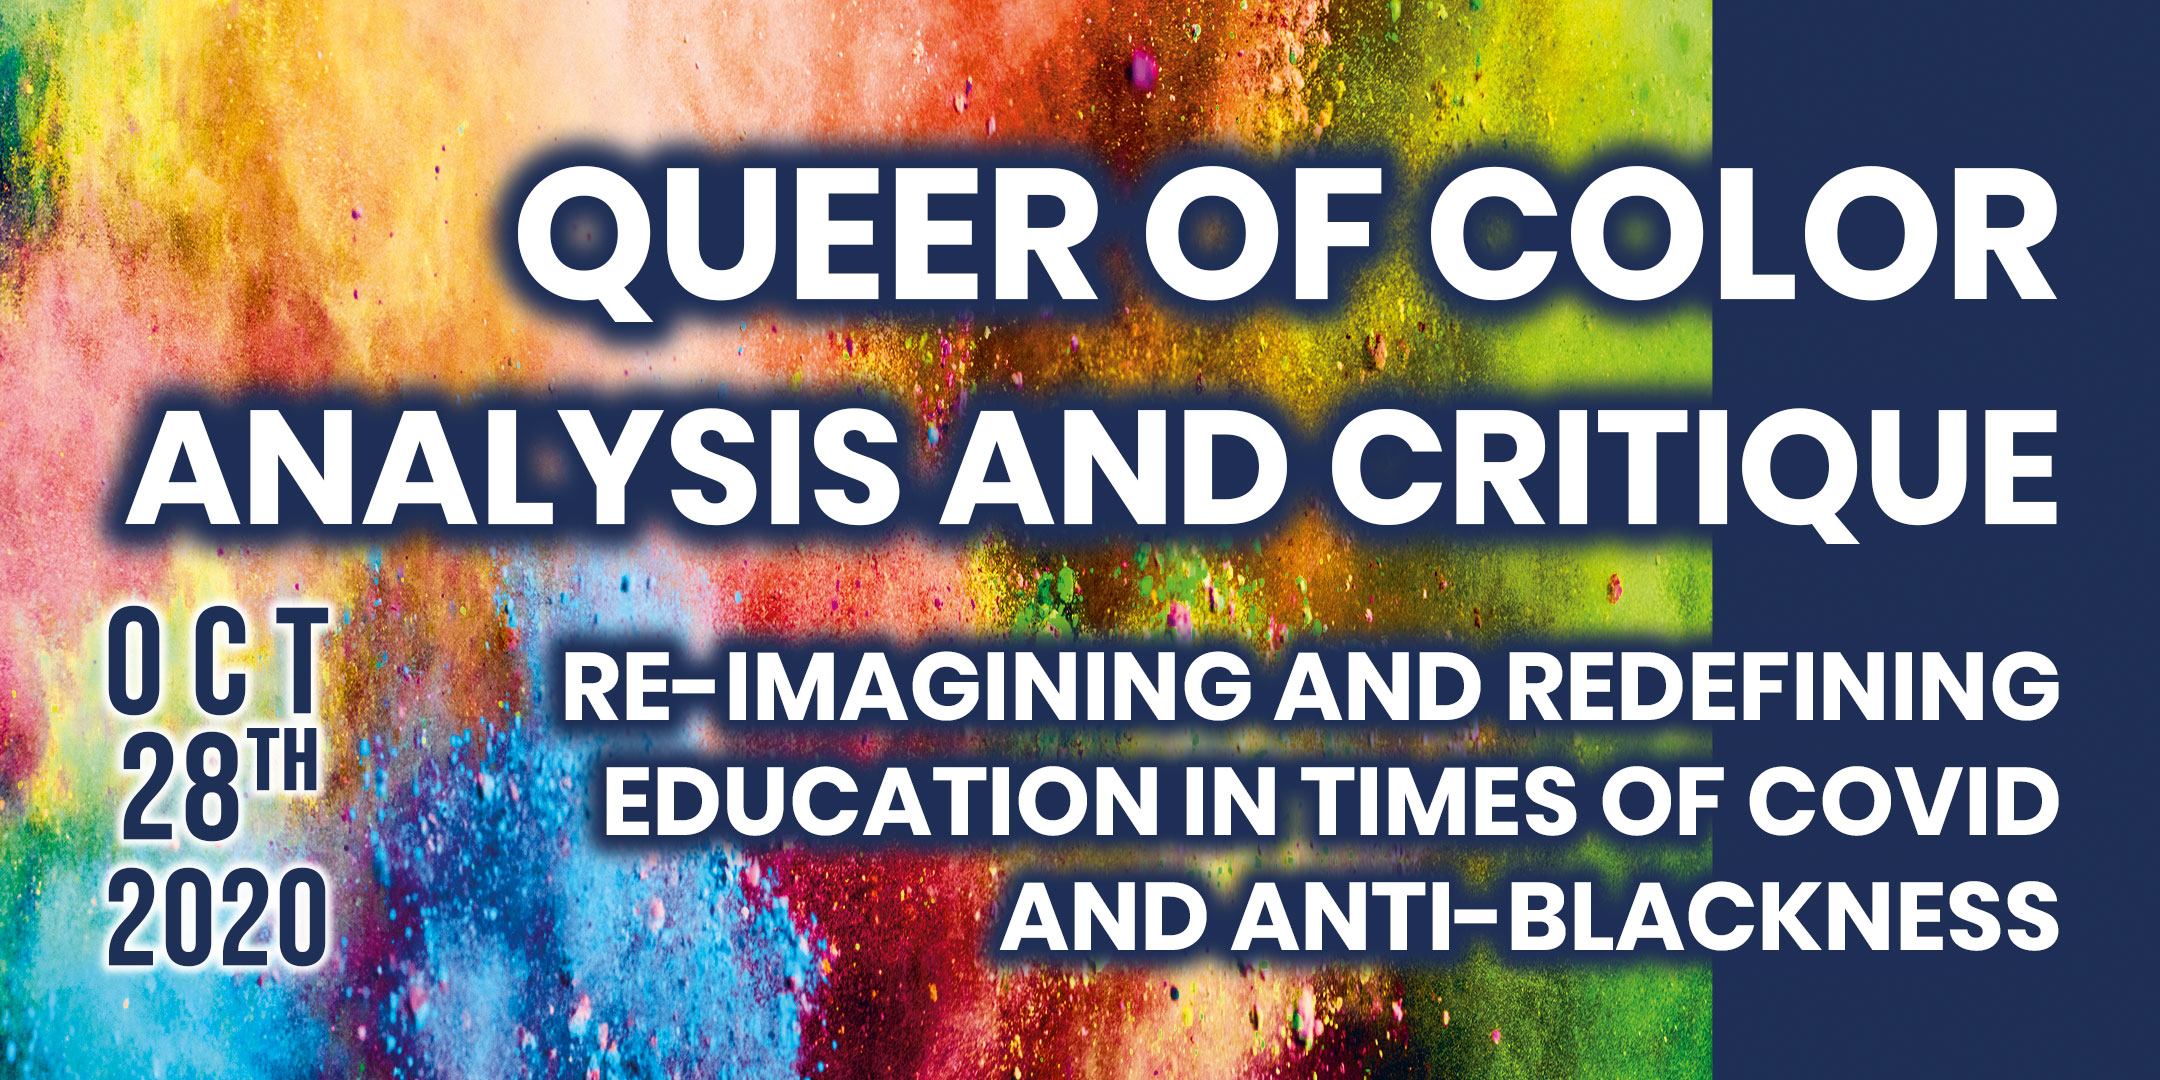 QOCAERI: Re-imagining and Redefining Education in Times of COVID and Anti-Blackness